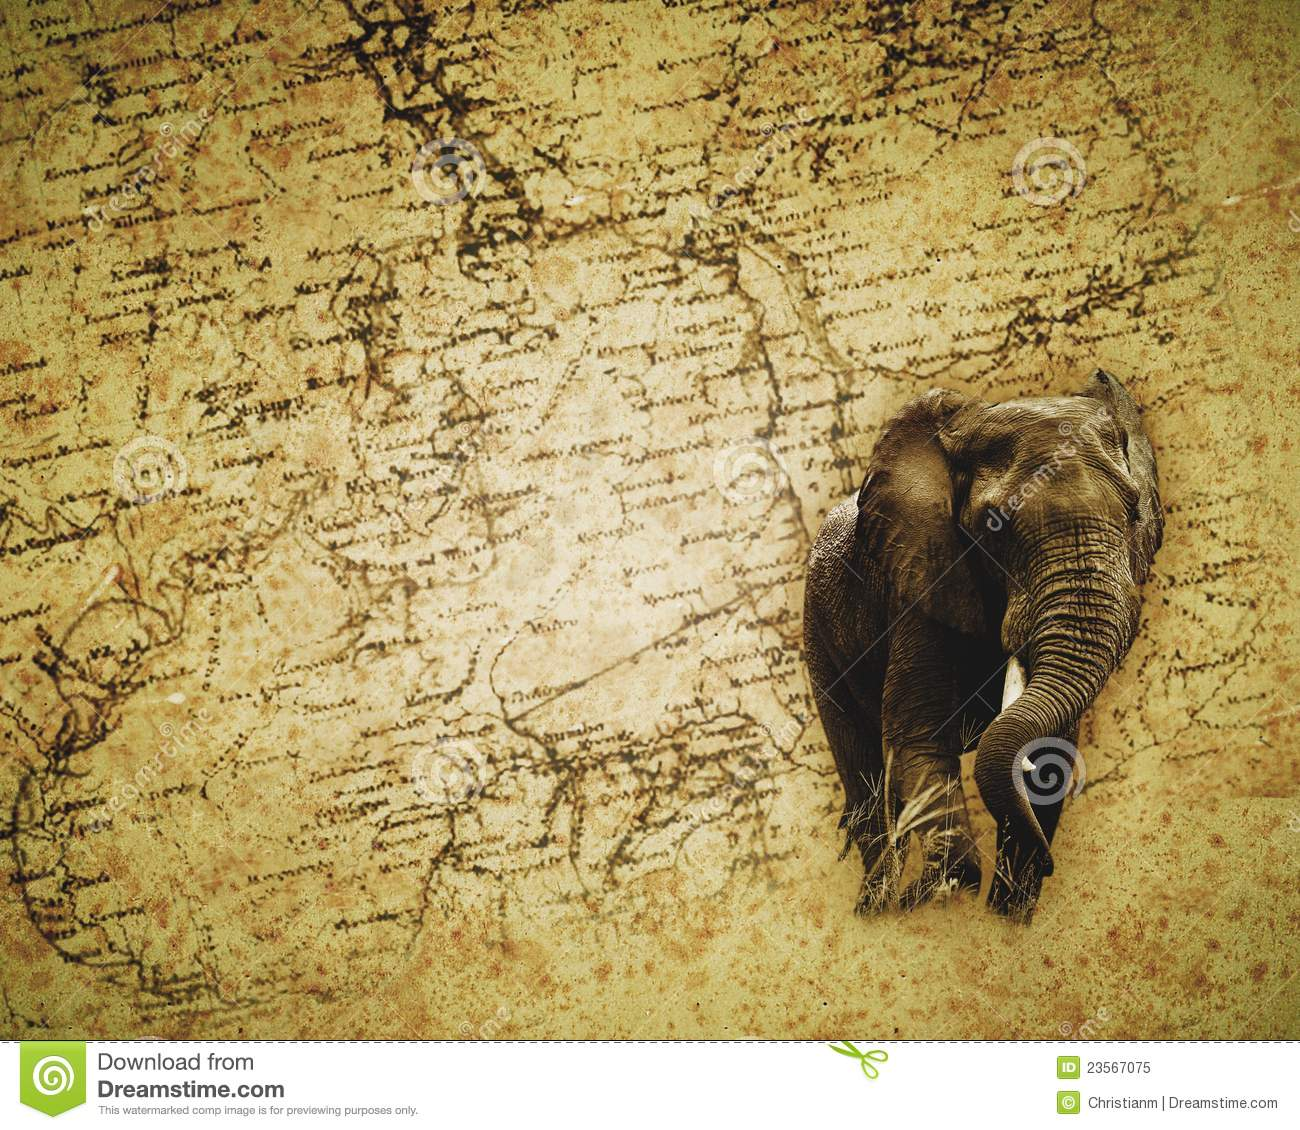 African Elephant wallpaper stock image Image of destination 23567075